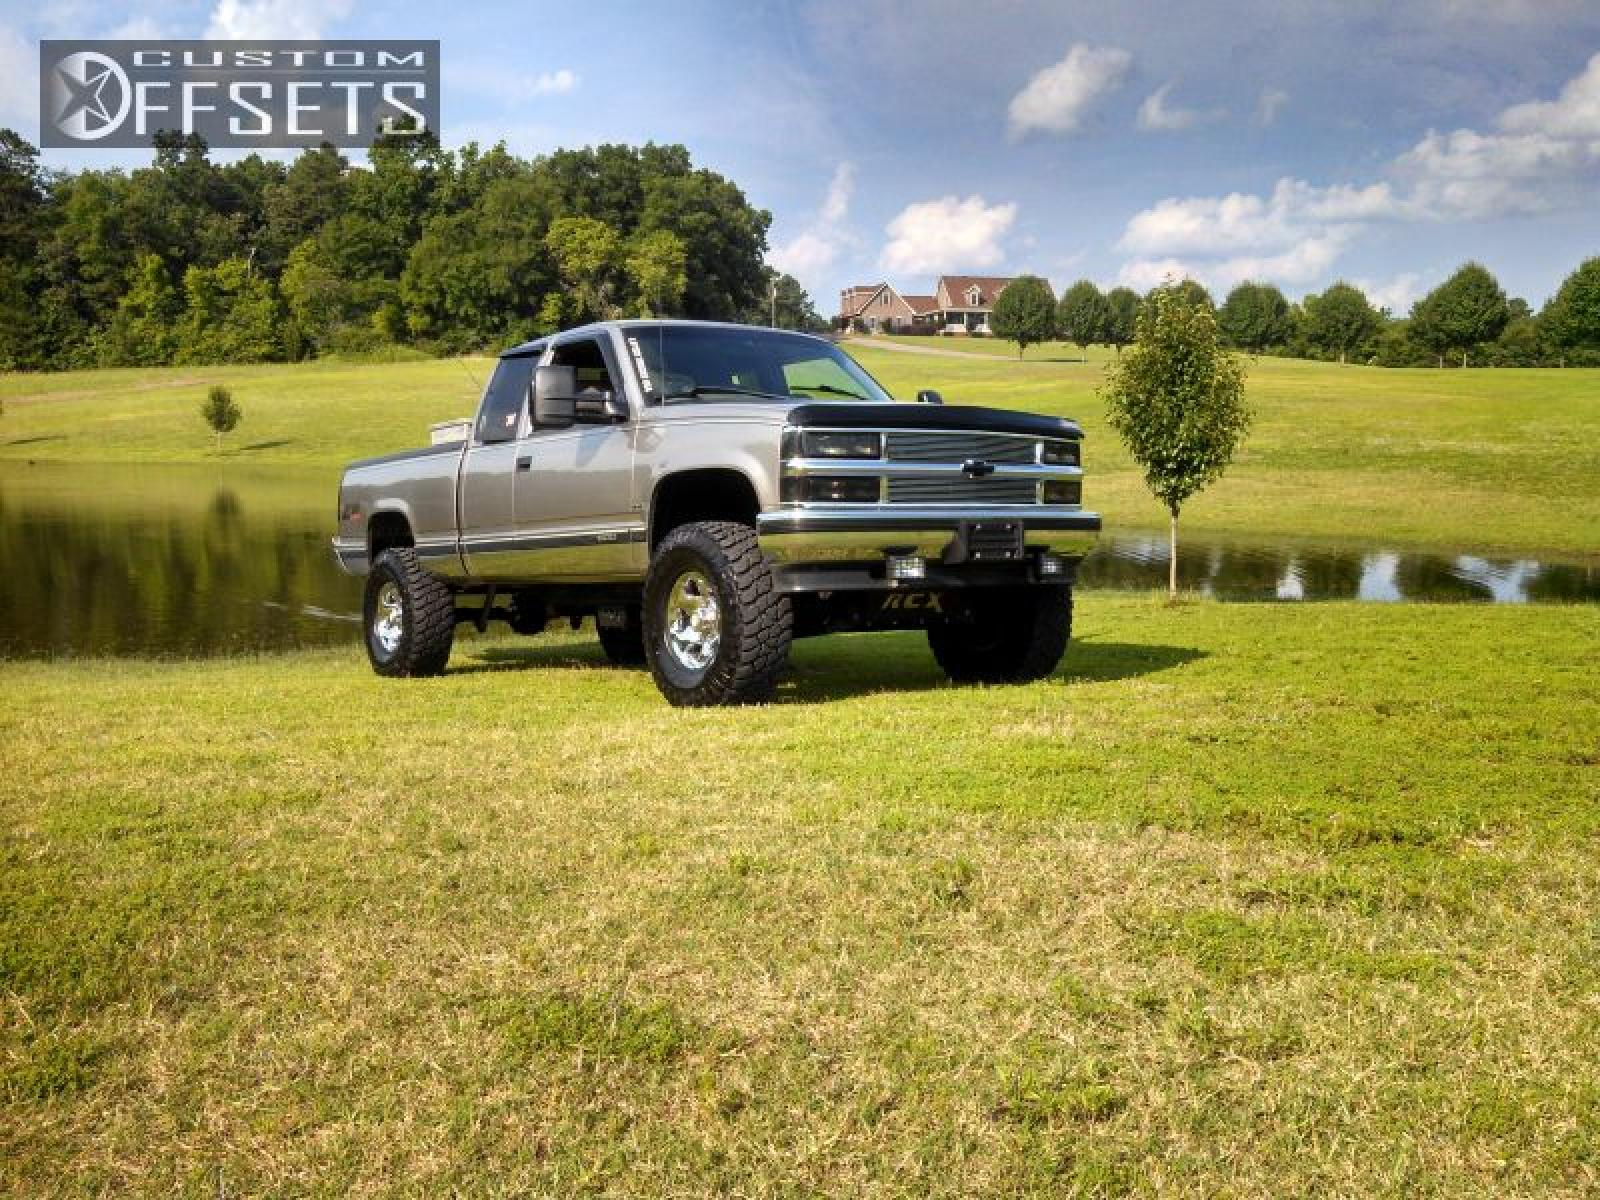 1998 Chevrolet C K 1500 Series Information And Photos Zombiedrive 1961 Chevy Truck Lifted 800 1024 1280 1600 Origin